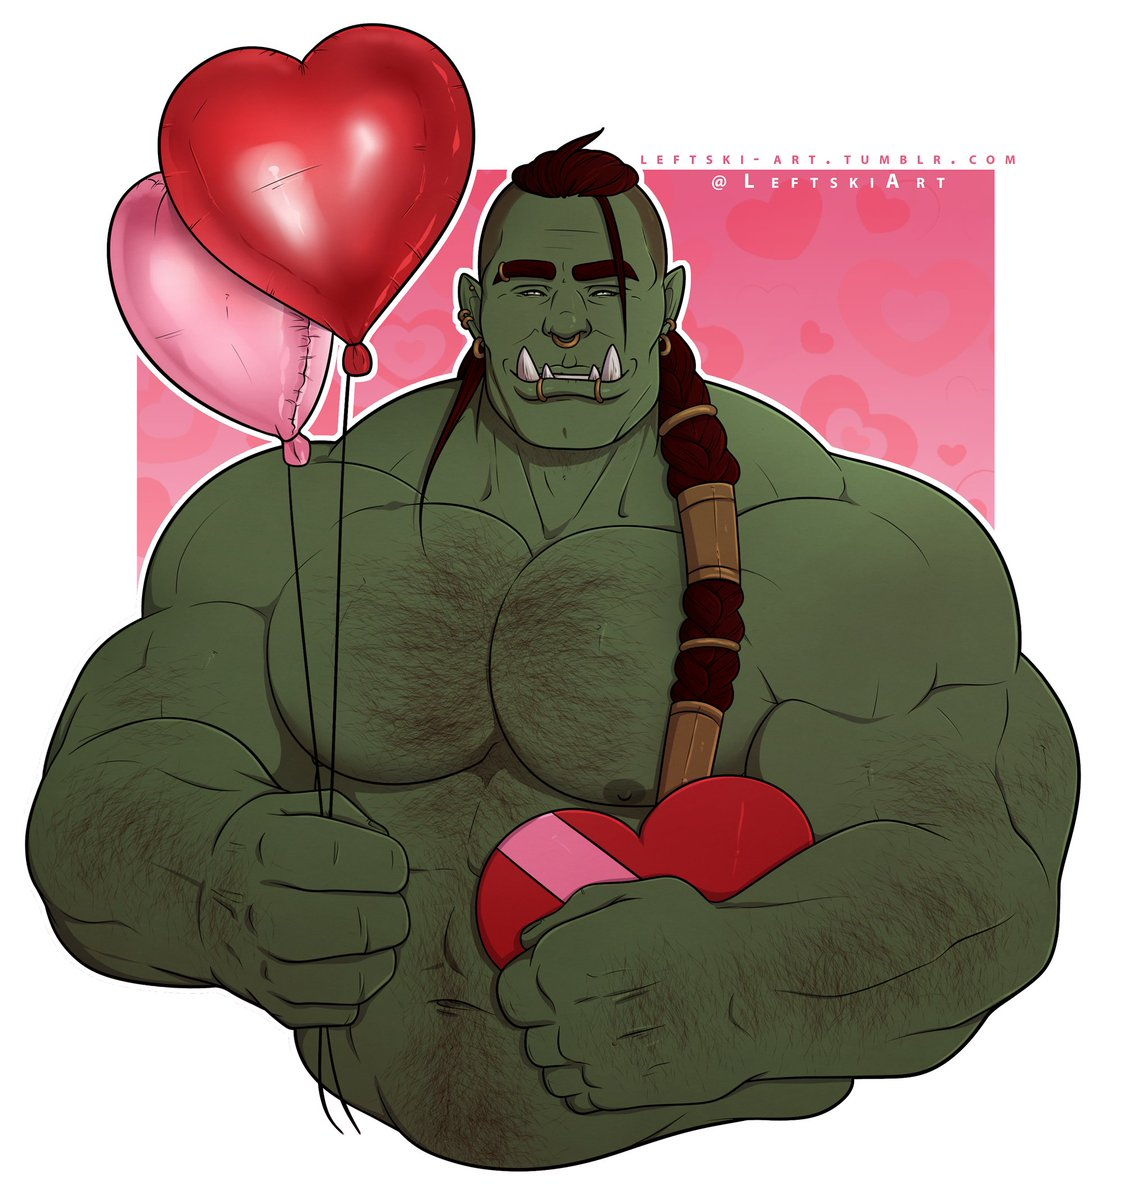 This Valentine's orc is really sorry he's late :( Will you still accept his love? #ValentinesDay2020 <br>http://pic.twitter.com/QzGwfQBqU6